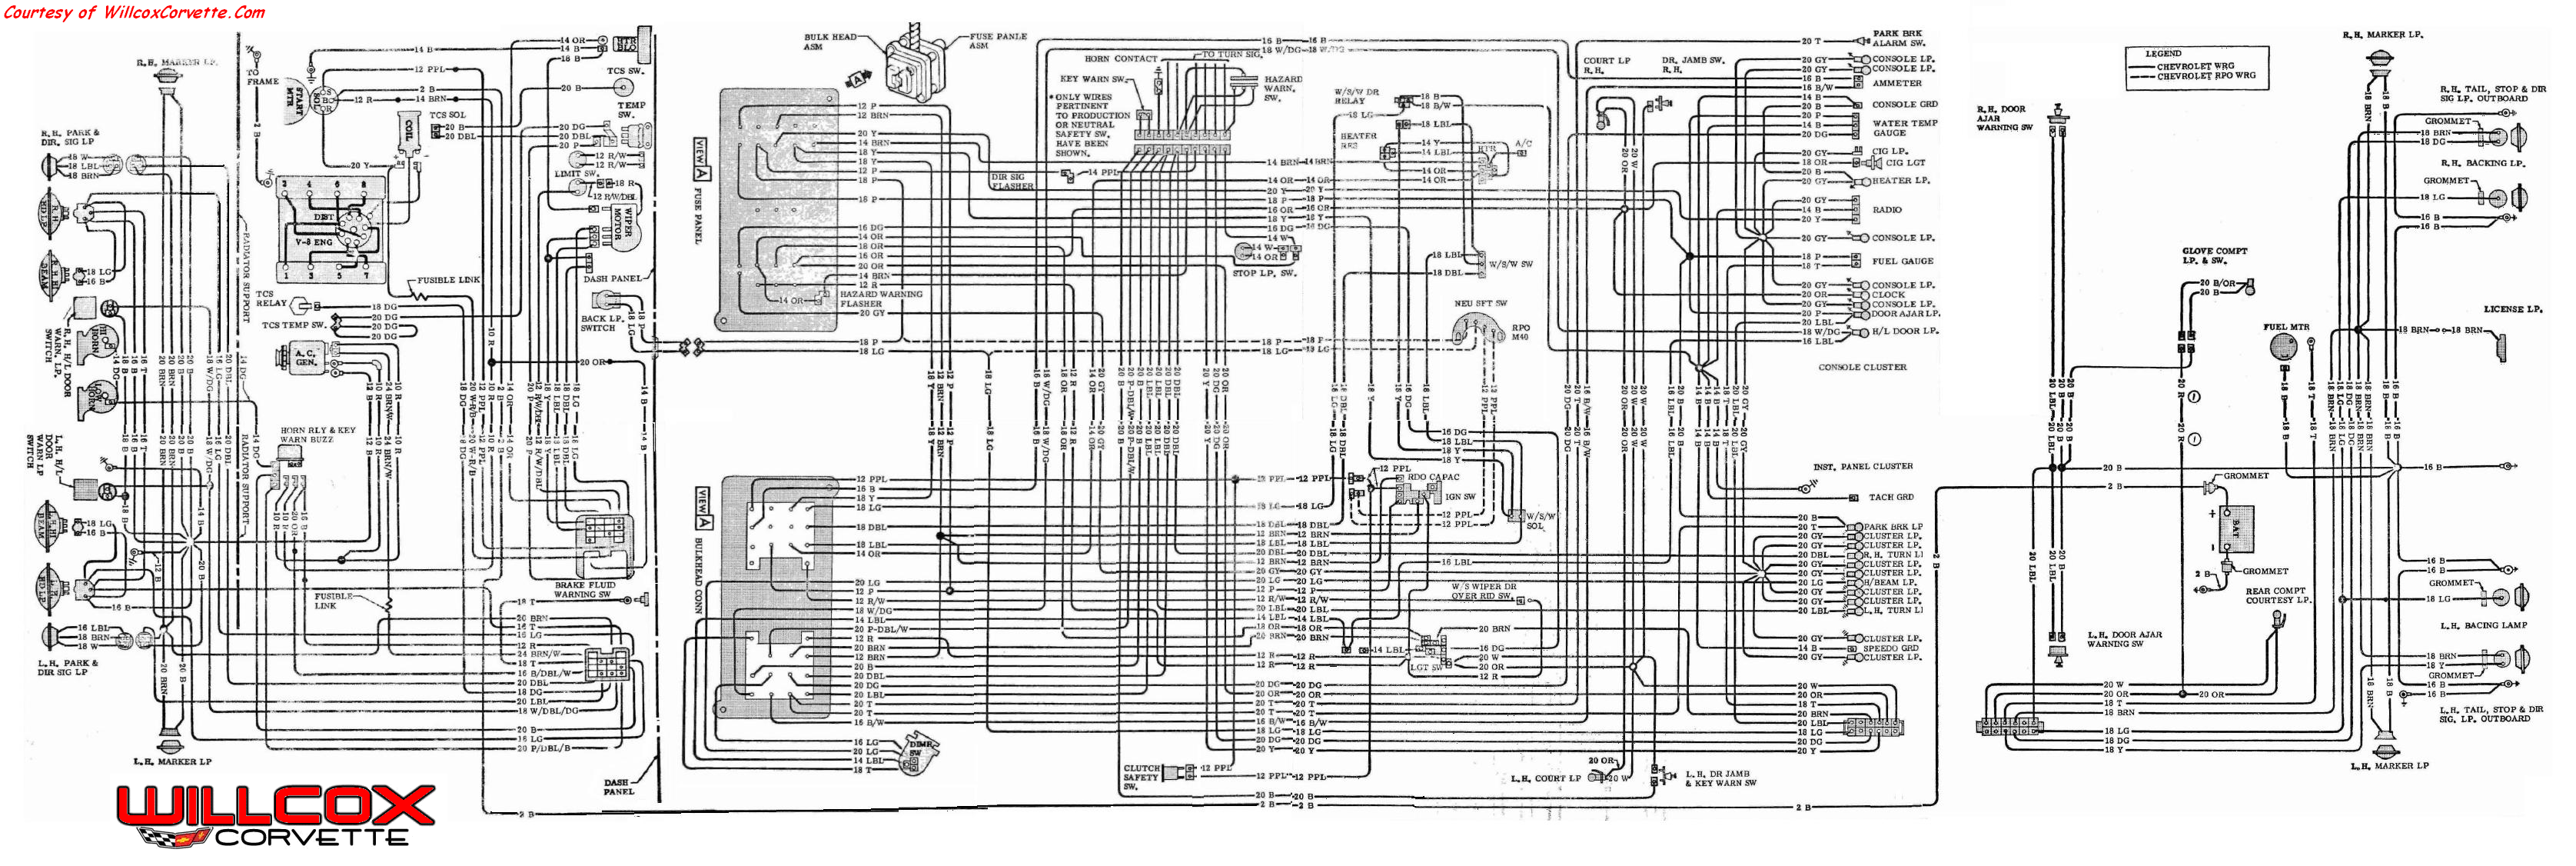 A additionally Pin likewise Corvette Wire Schematic Tracer together with Gaugeill Corvette Part additionally B F E. on 1984 corvette wiring schematic